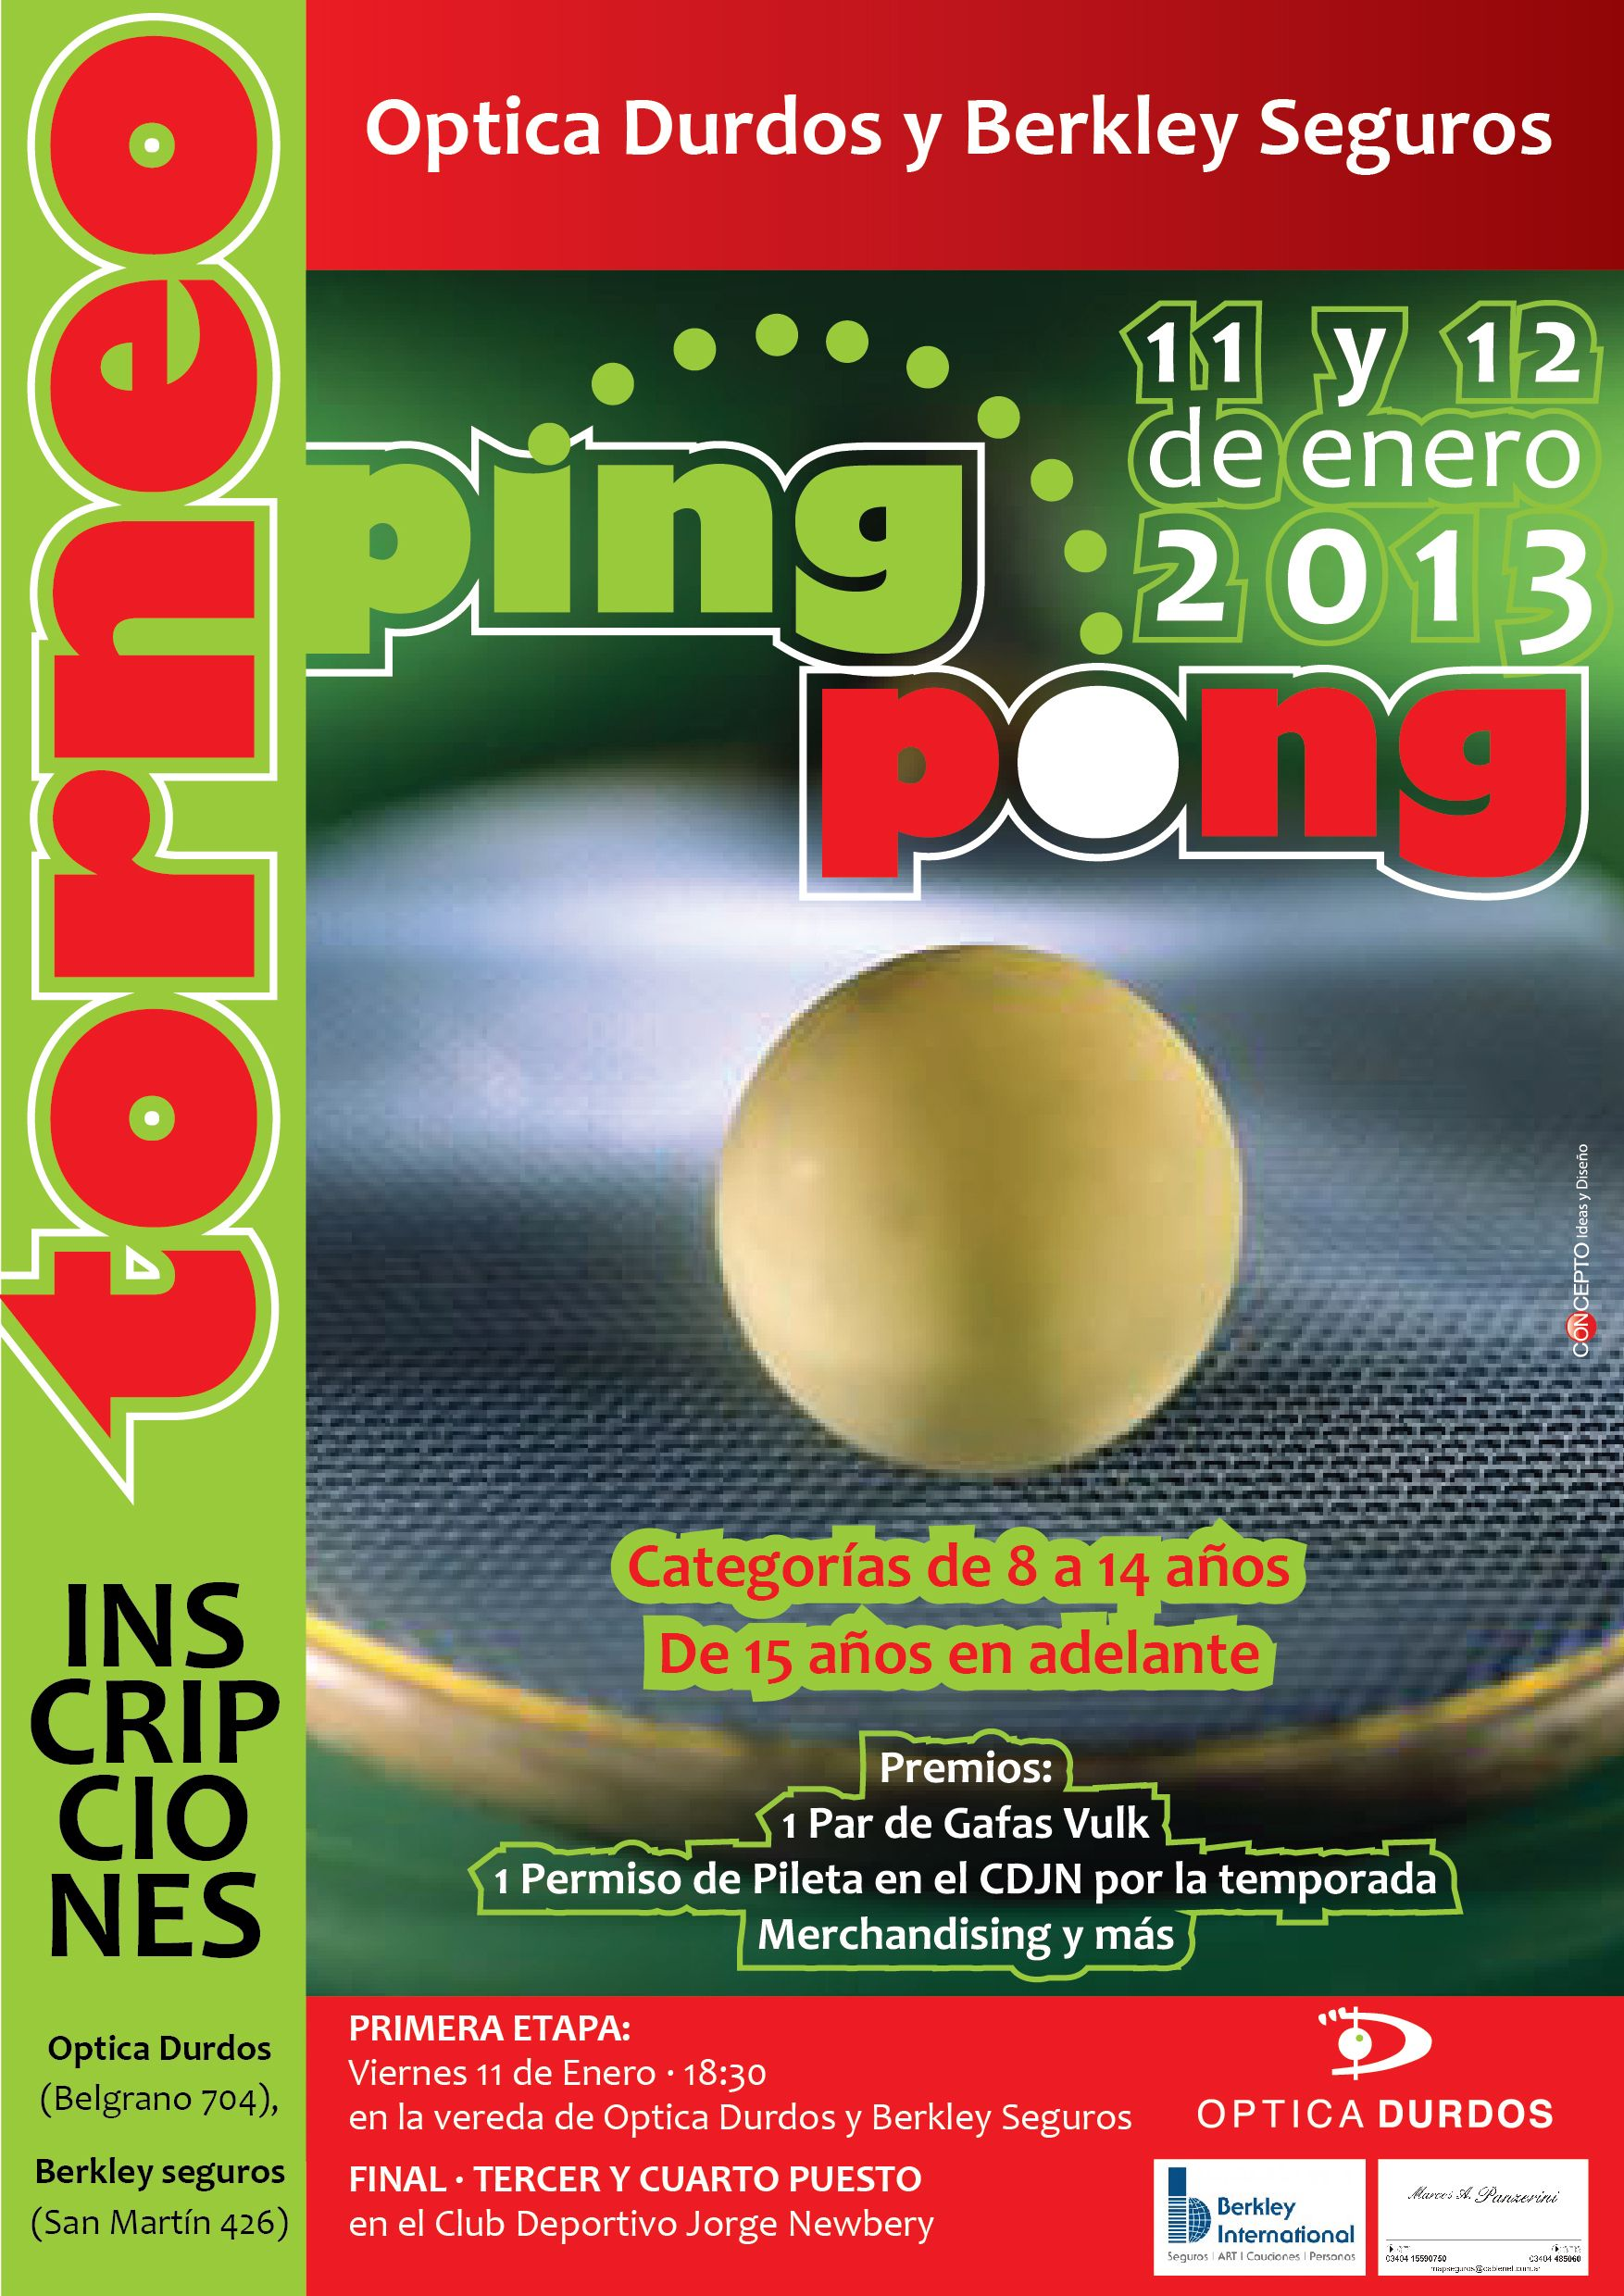 Torneo de Ping pong (With images)